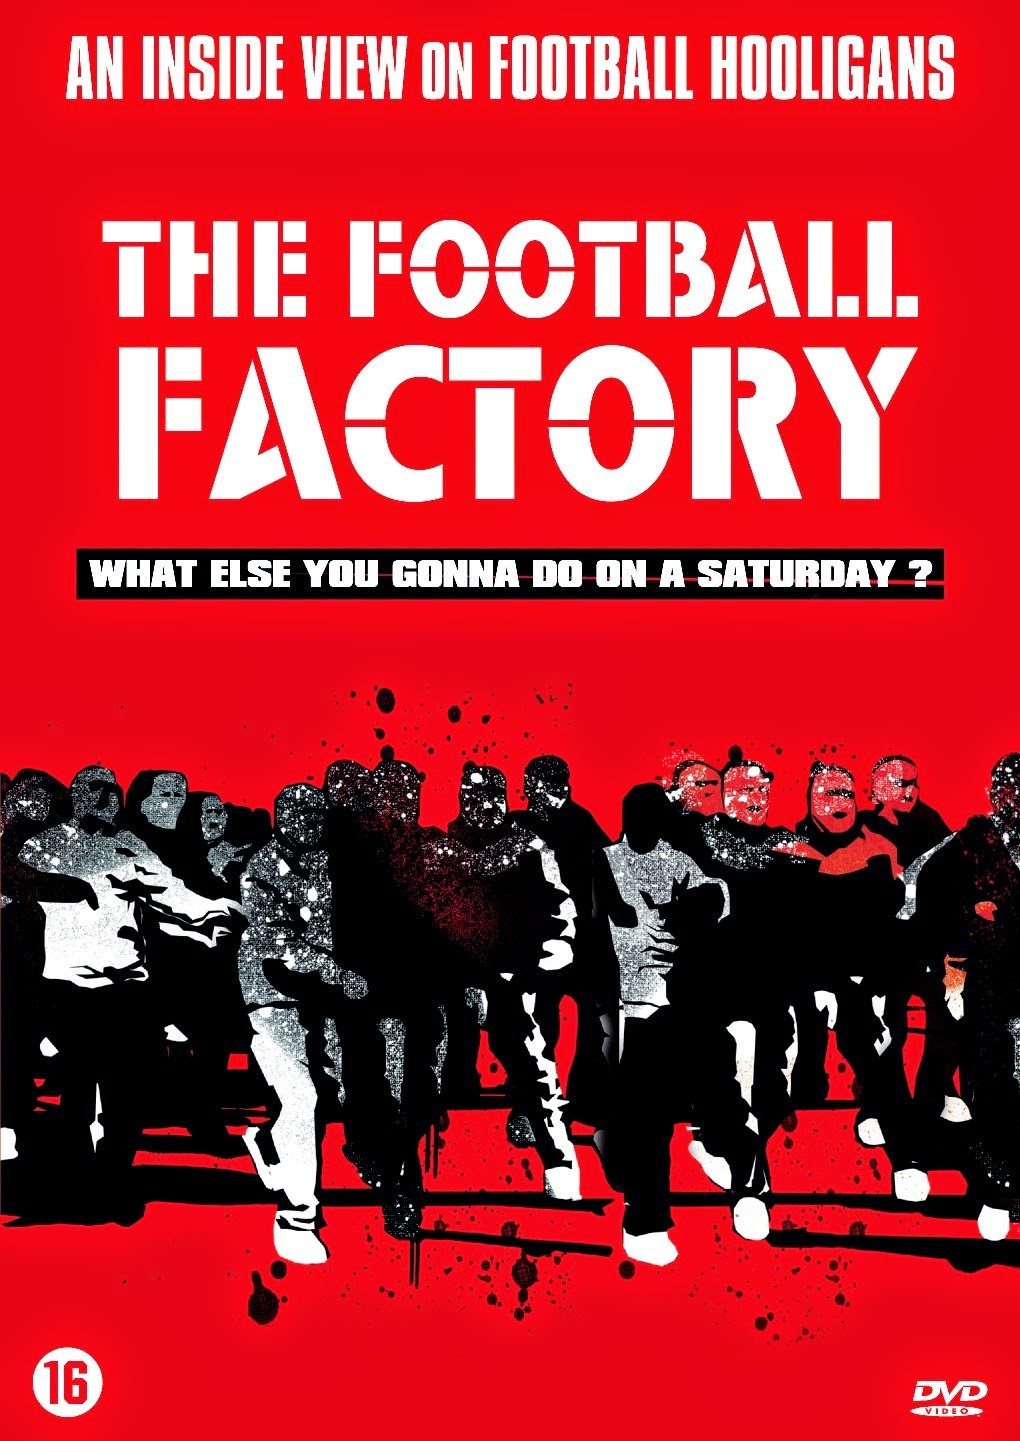 The Football Factory (2004) ταινιες online seires xrysoi greek subs